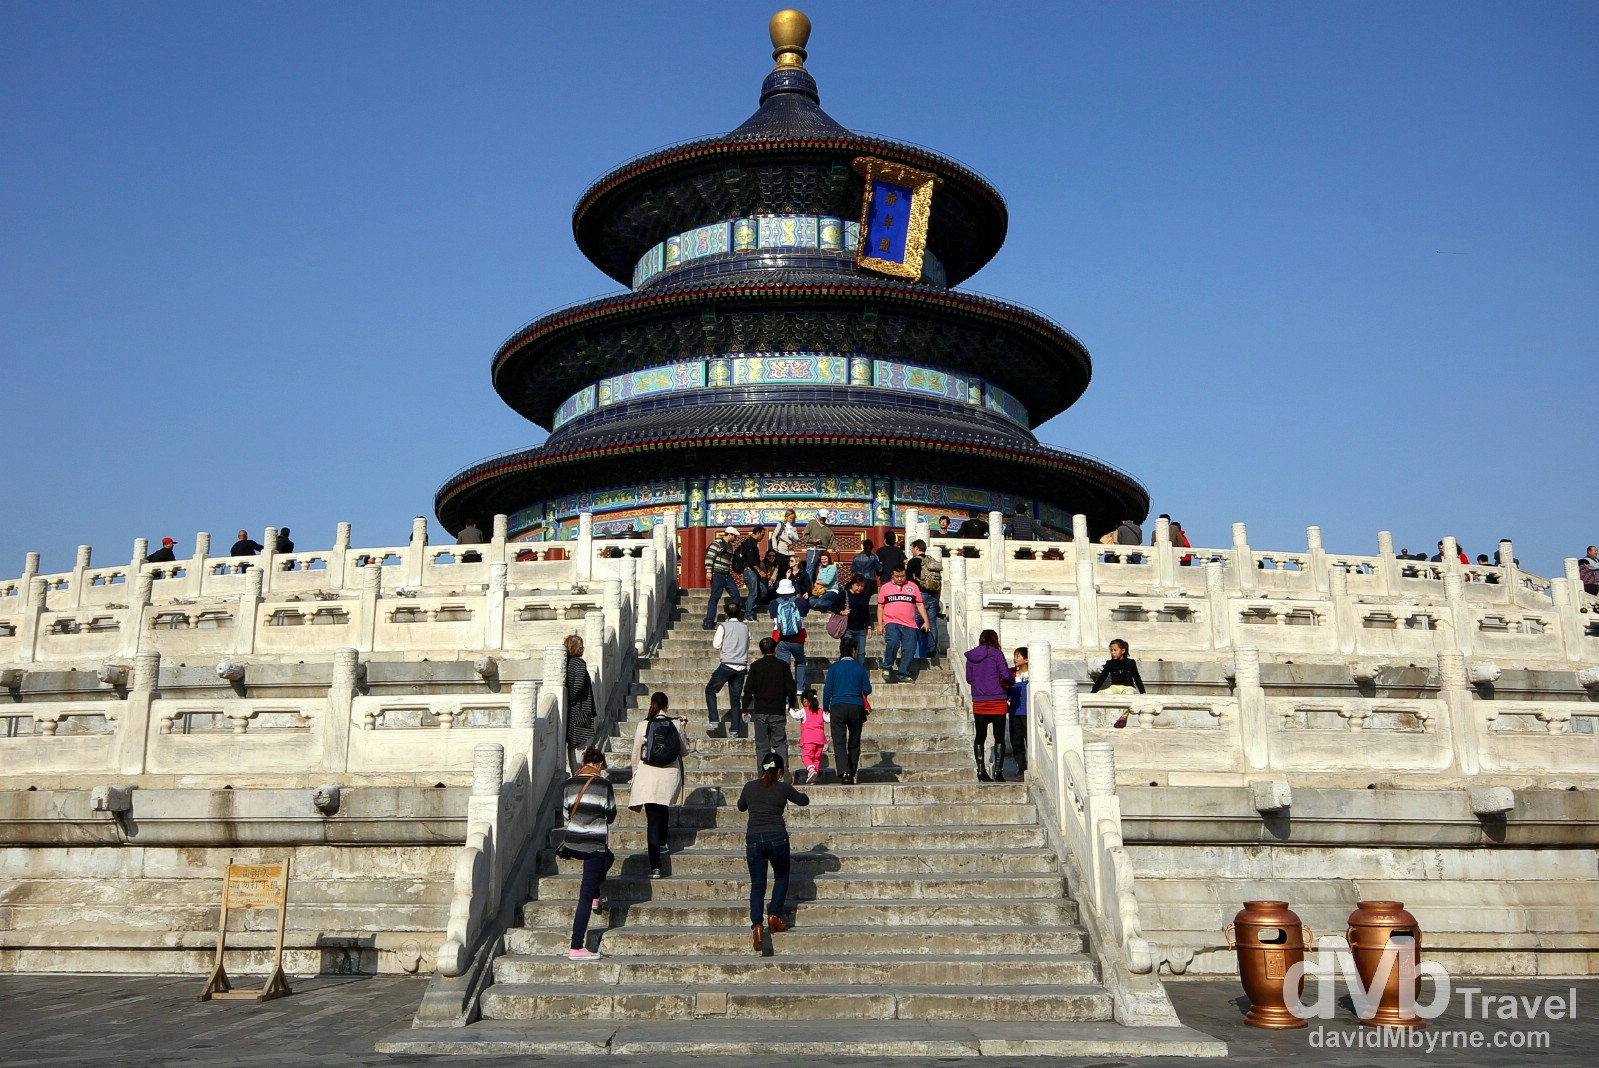 The stunning Hall of Good Harvests, the main structure of the Temple of Heaven complex in Beijing, China. October 27th 2012.